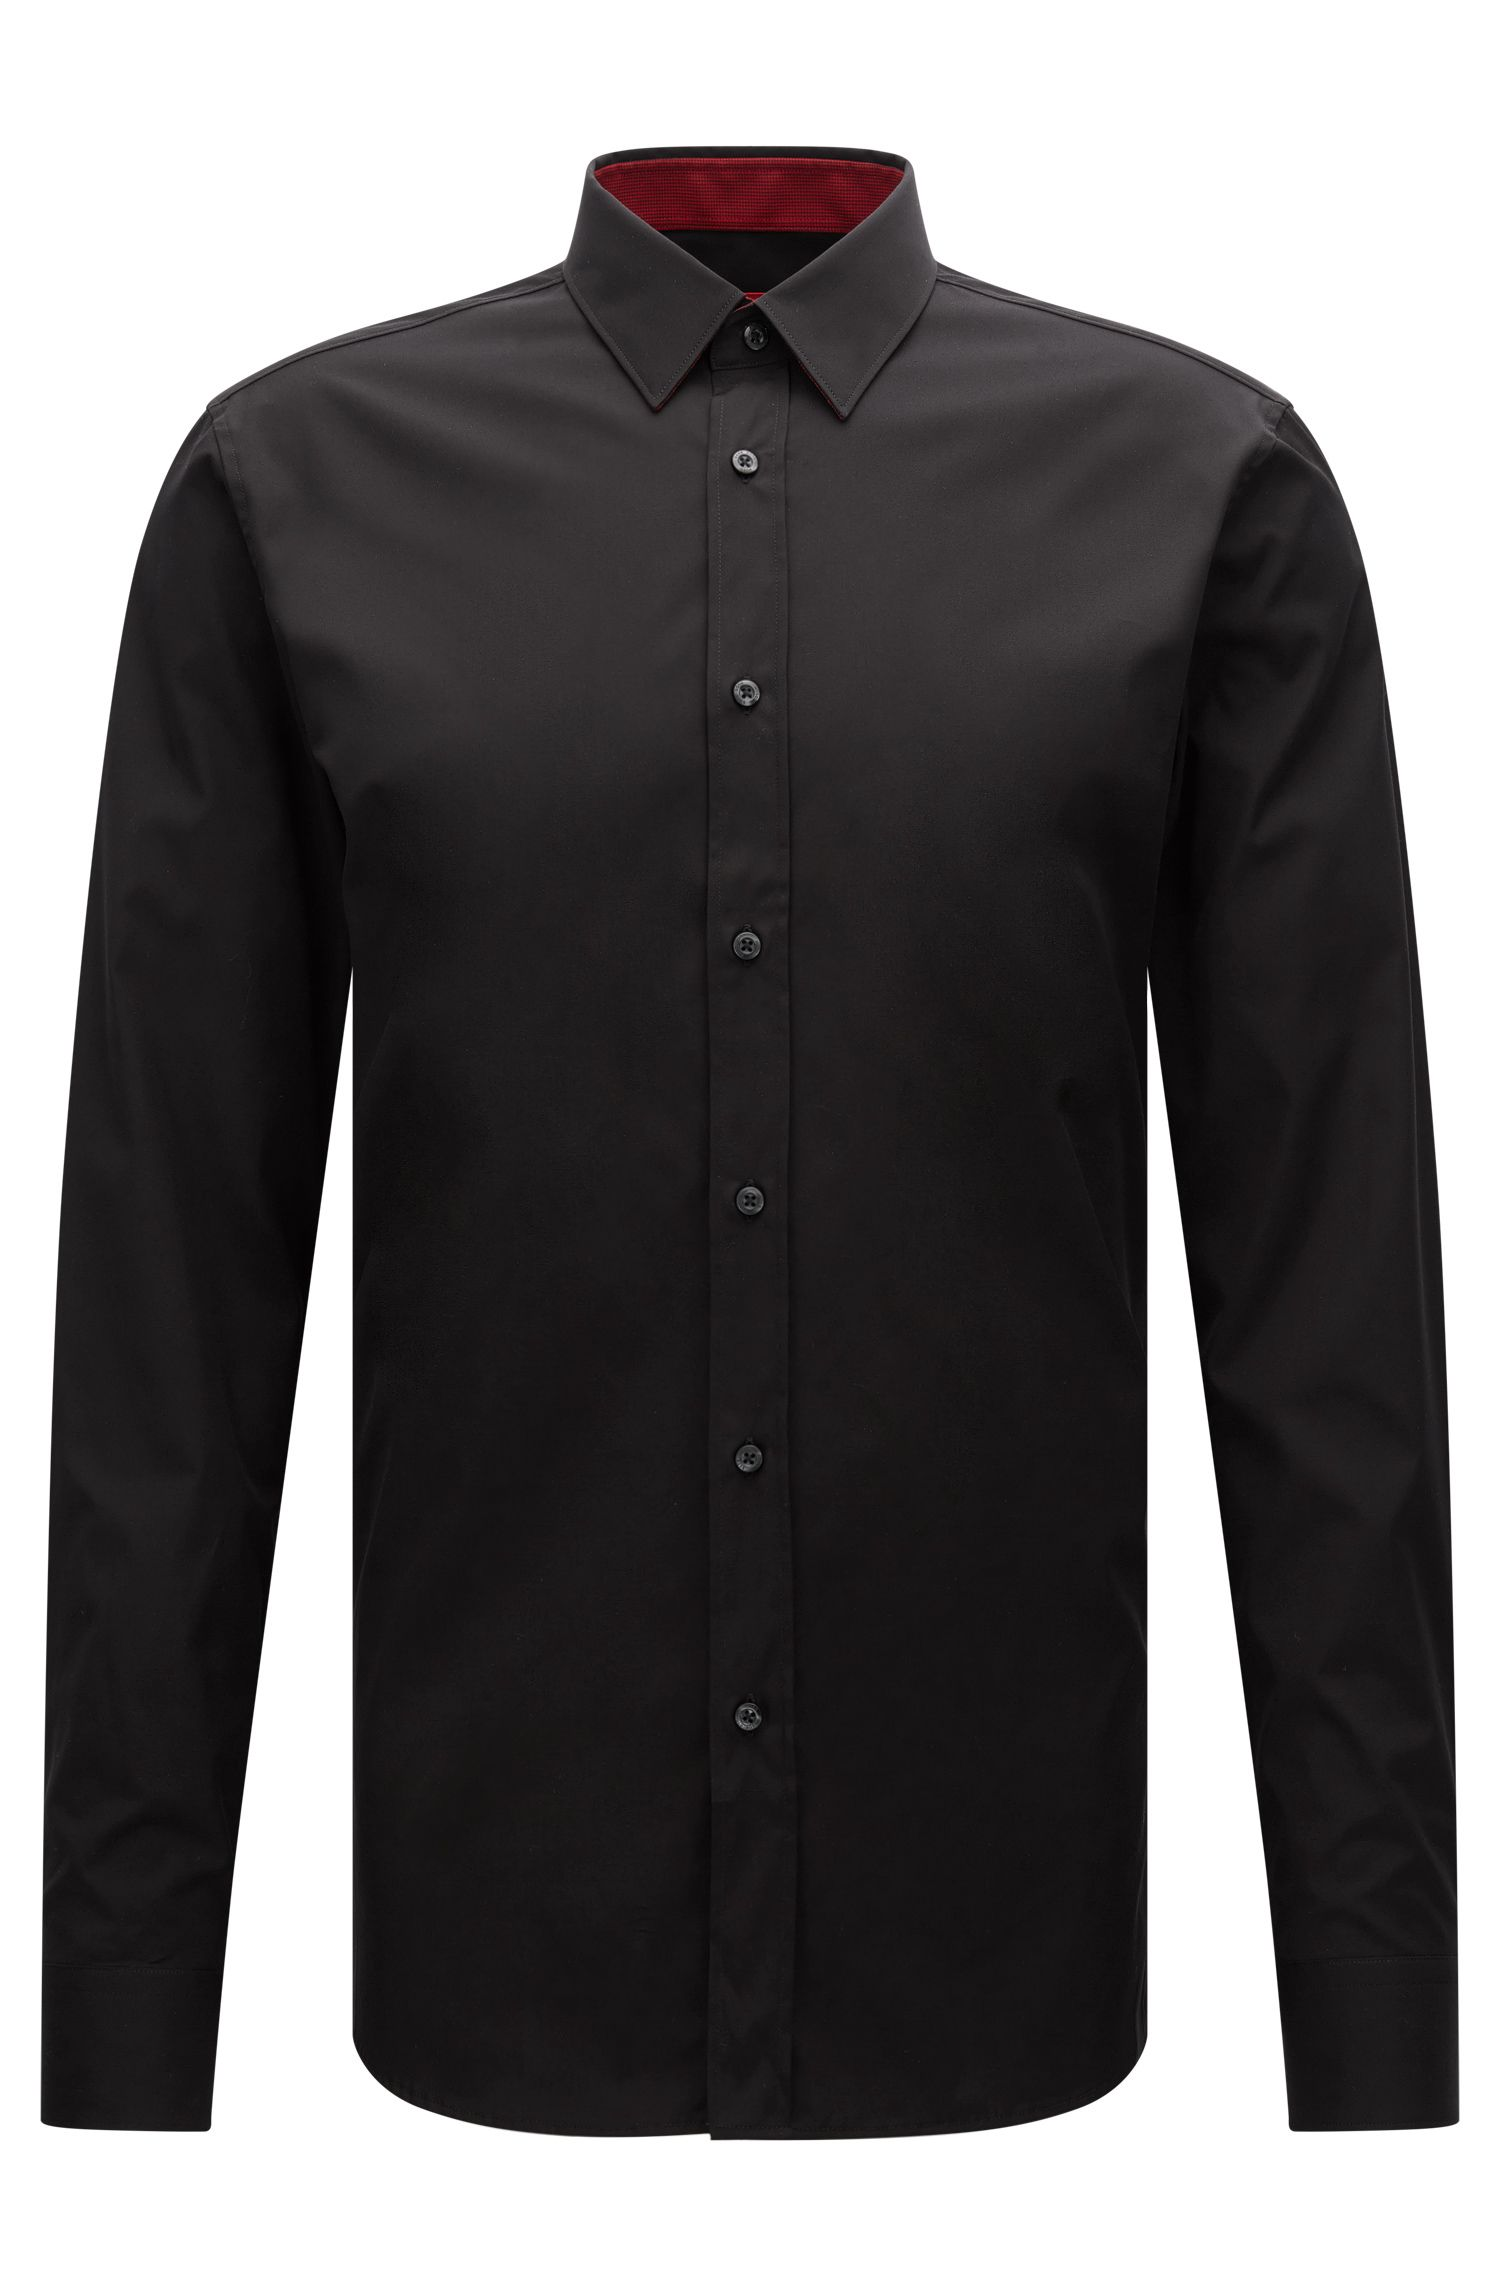 'Elisha' | Extra-Slim Fit, Cotton Easy Iron Button Down Shirt